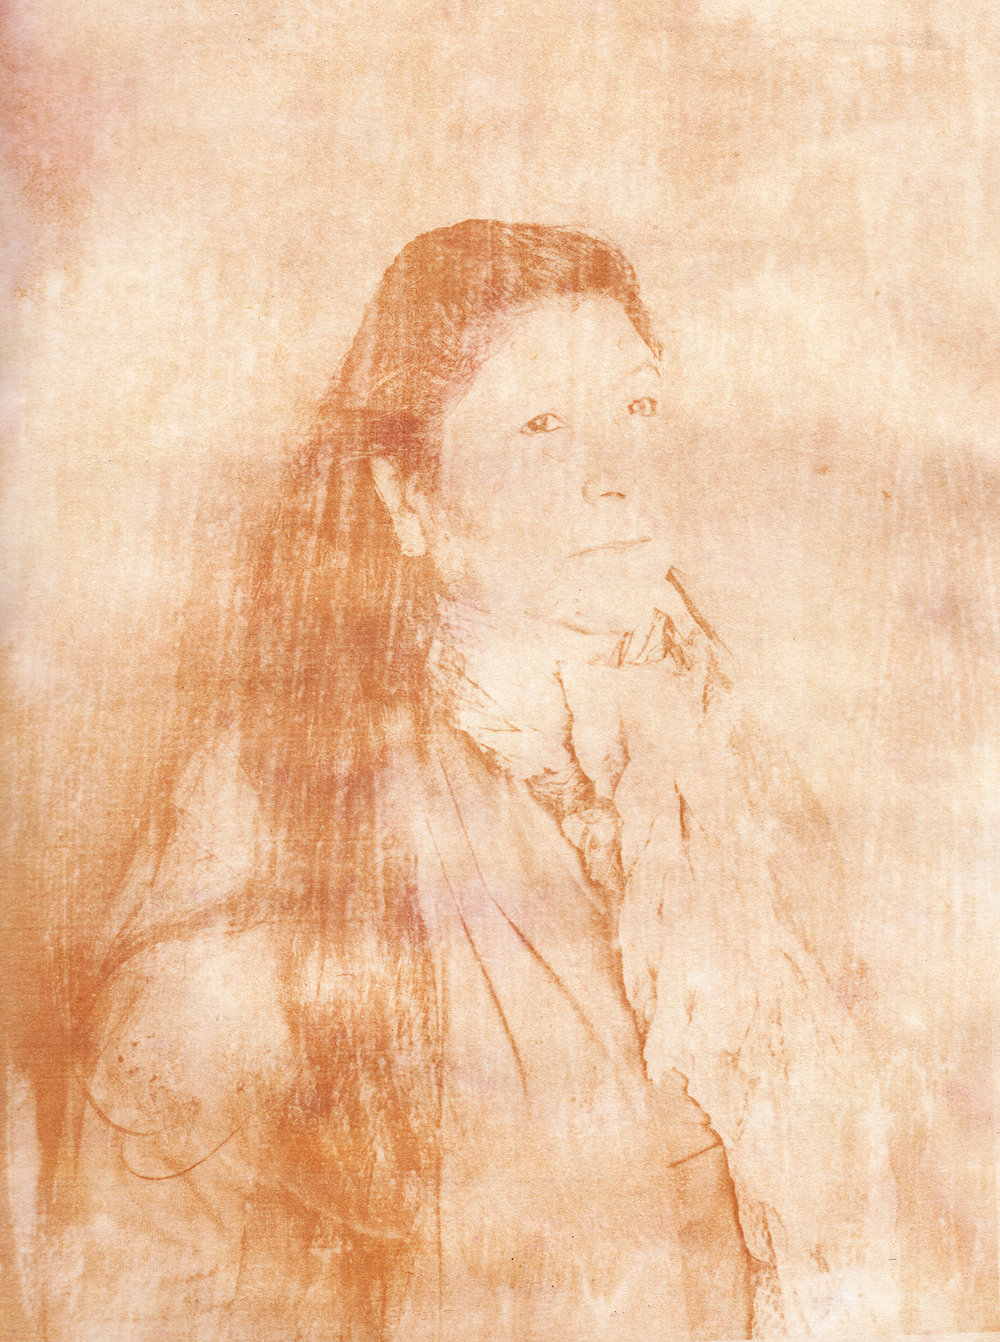 """Portrait of Patricia Lamas, weaver and member of """"Hilanderas del Fin del Mundo"""", a group of women dedicated to retake traditions of embroidery and weaving by invoking local production against the advance of imports using natural raw materials produced in the island. Anthotype scan made with natural dyes made with a mixture of roots of local plants such as Lupino, Calafate and Turmeric. Photographer: Luján Agusti. Tierra del Fuego. April 15th, 2018"""